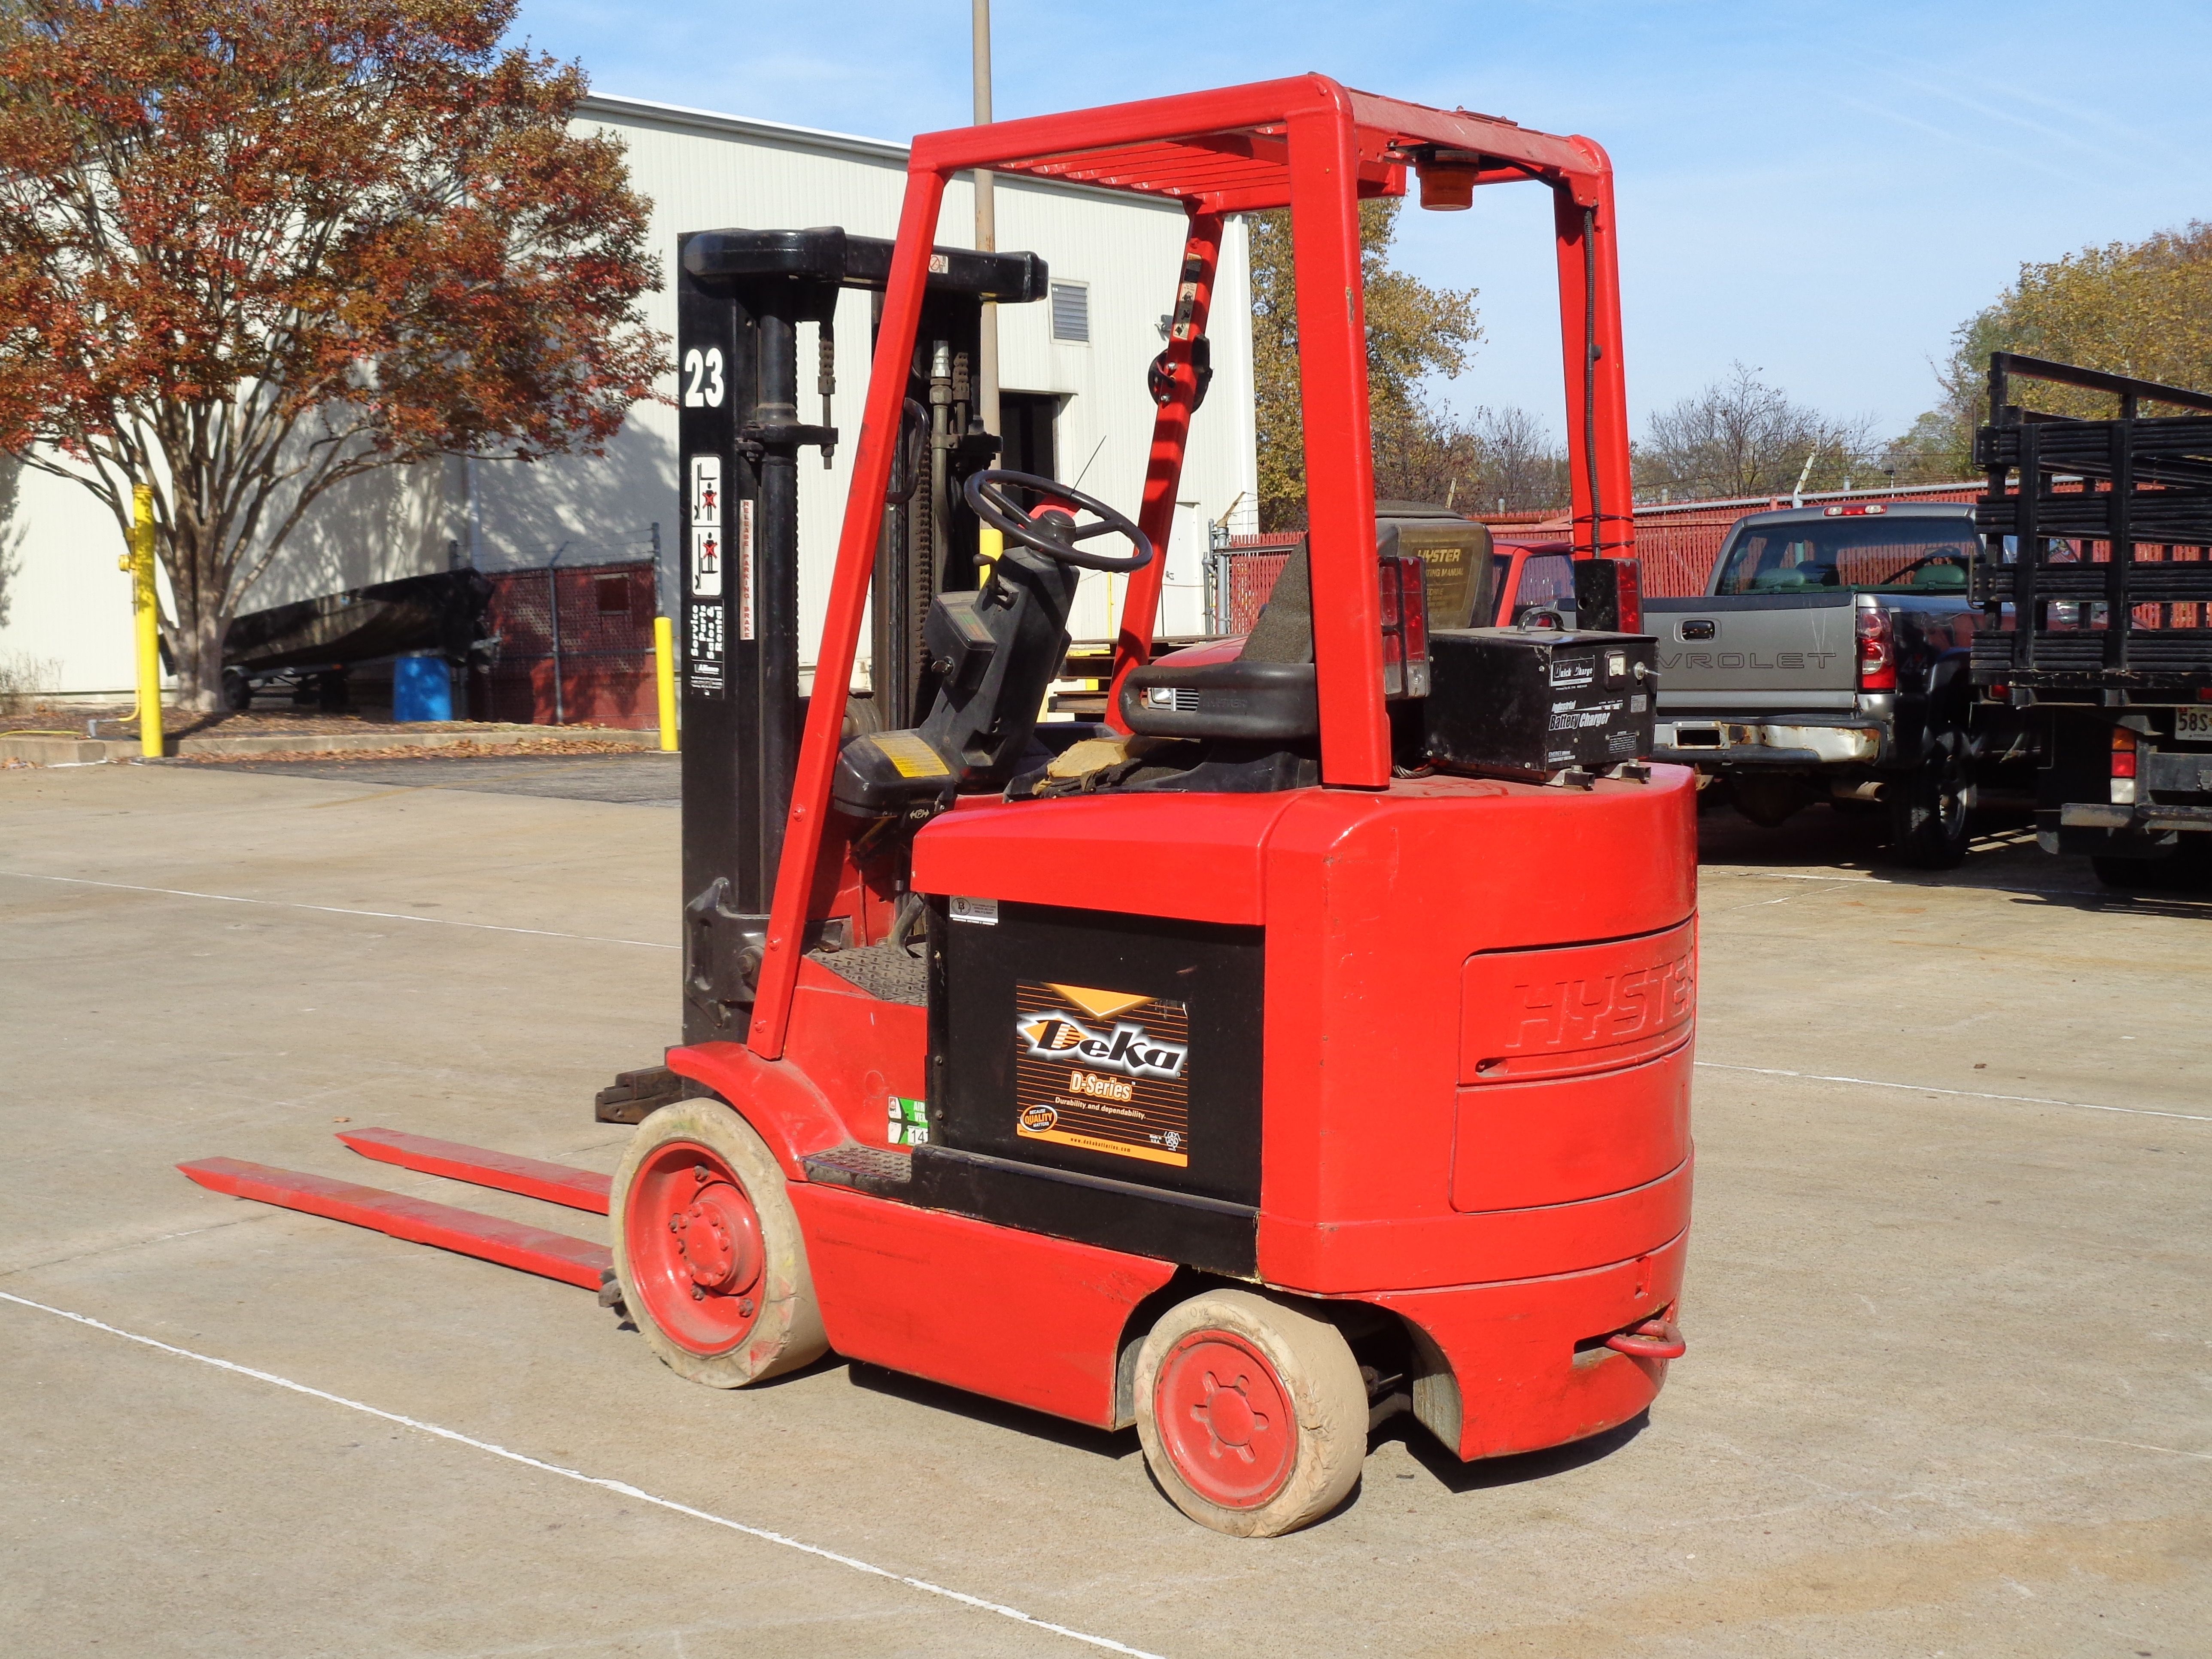 1999 Hyster E50XM-27 Forklift - 5,000 lbs - Image 3 of 5